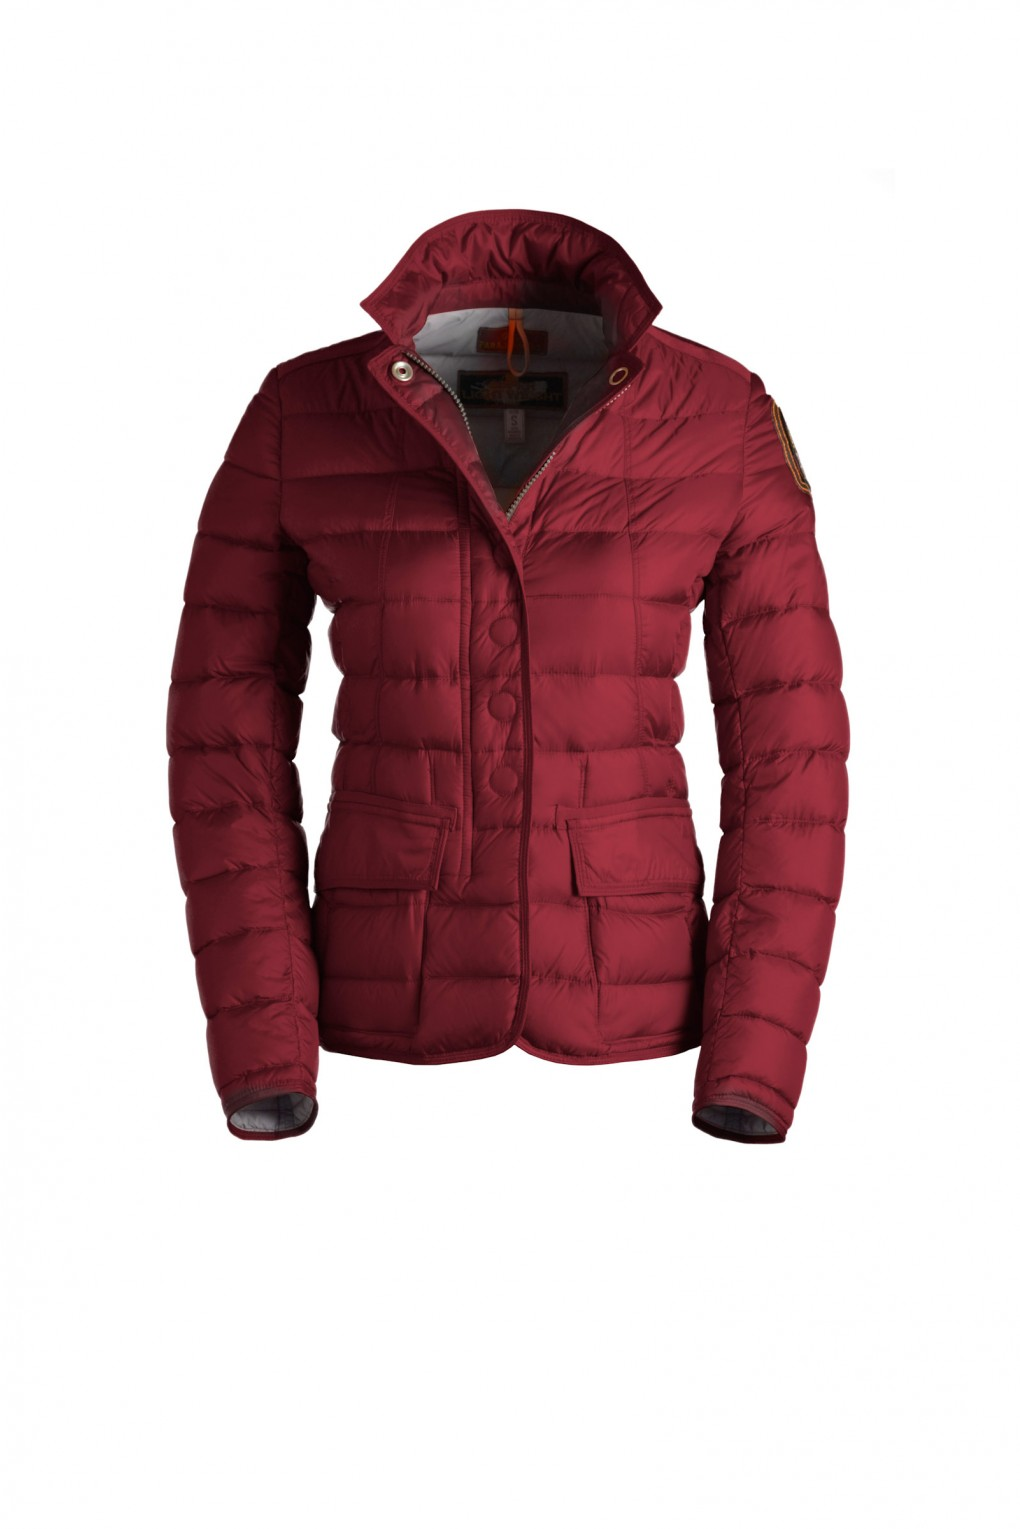 parajumpers ALISEE 6 woman outerwear Red